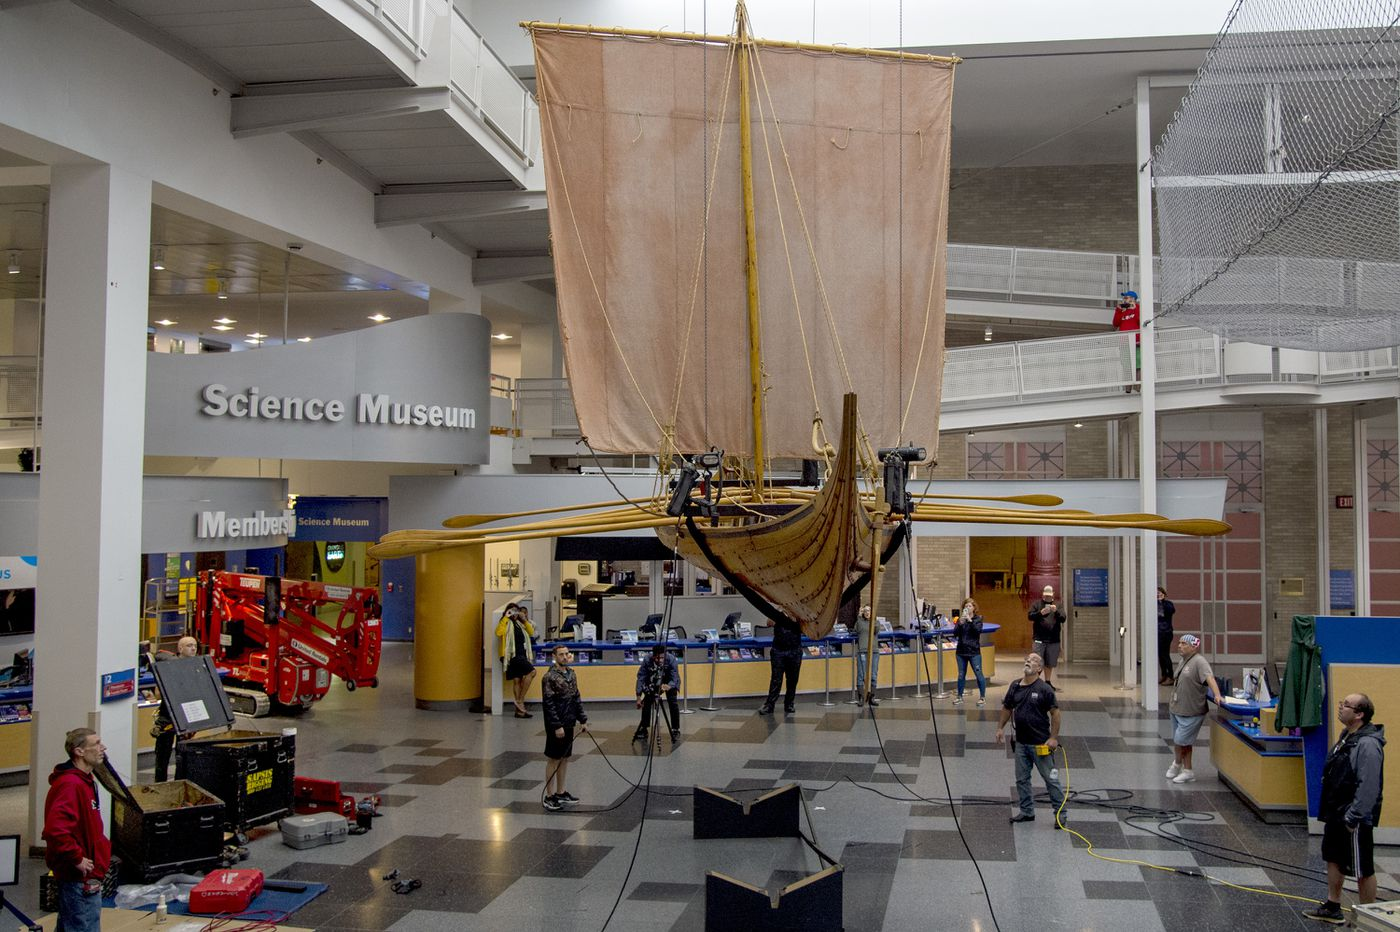 32-foot-long Viking ship arrives at the Franklin Institute